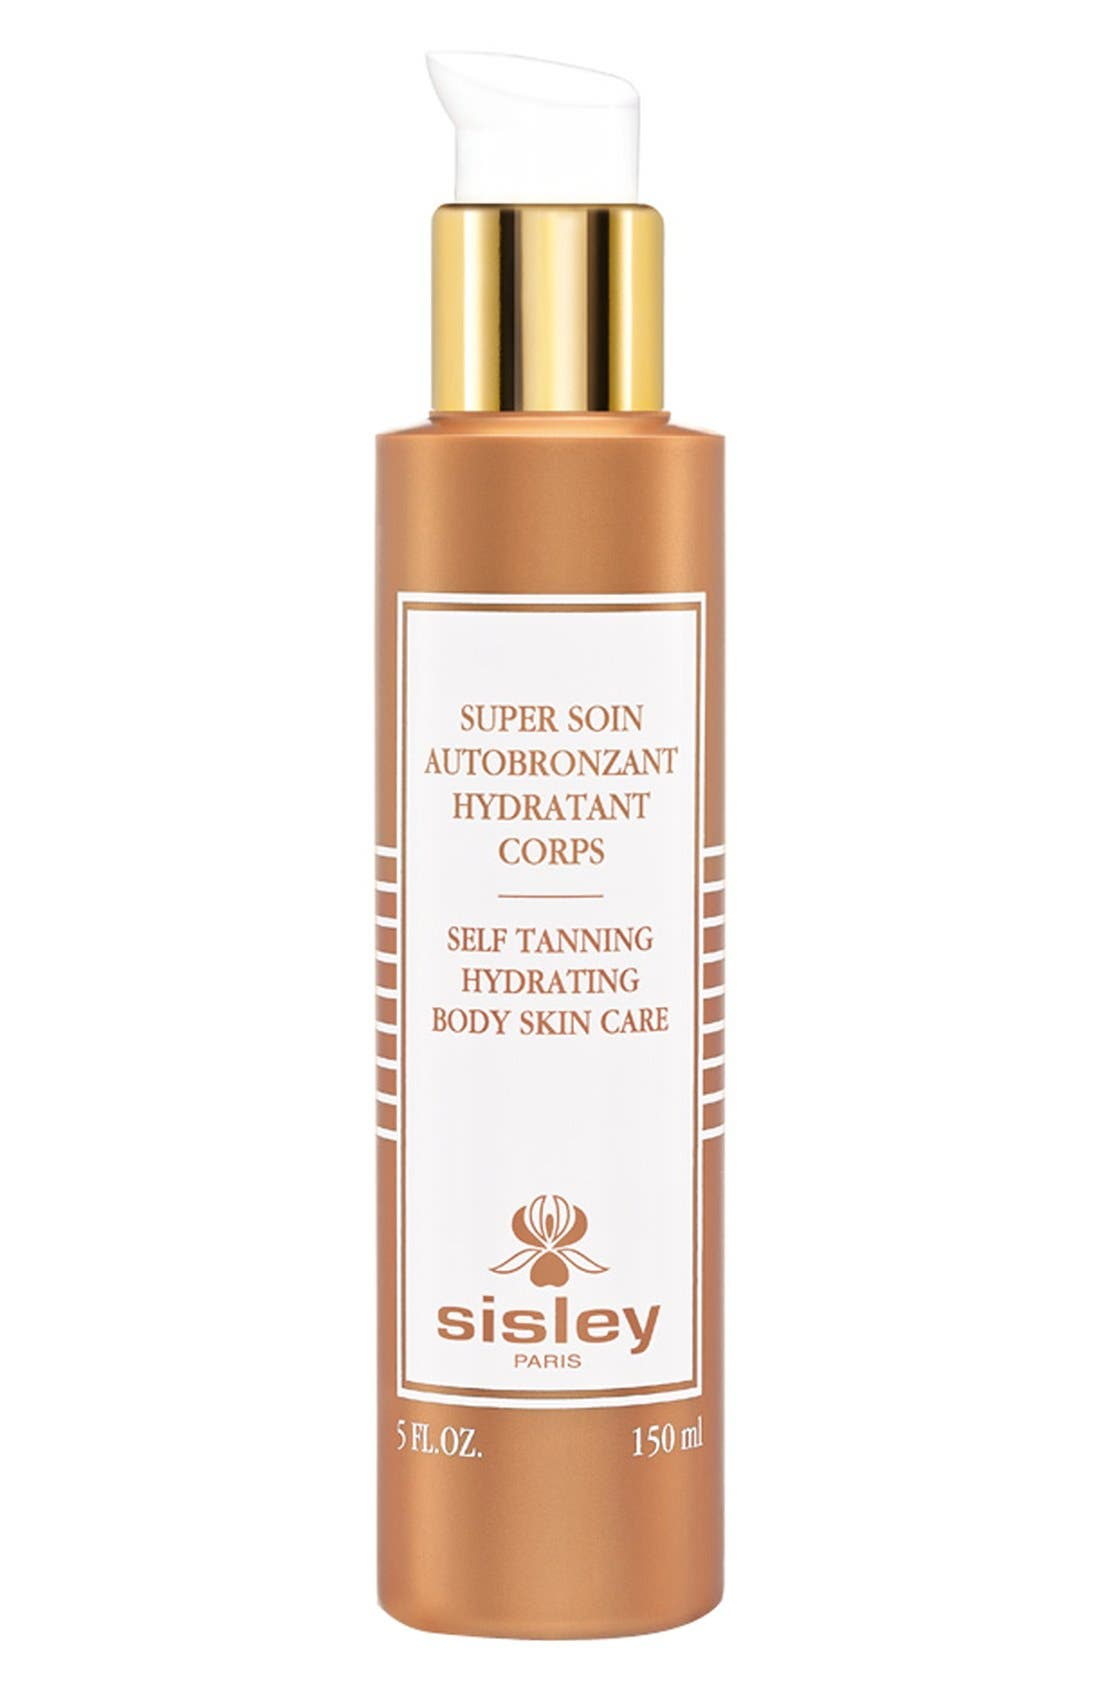 Sisley Paris Self Tan Hydrating Body Skin Care